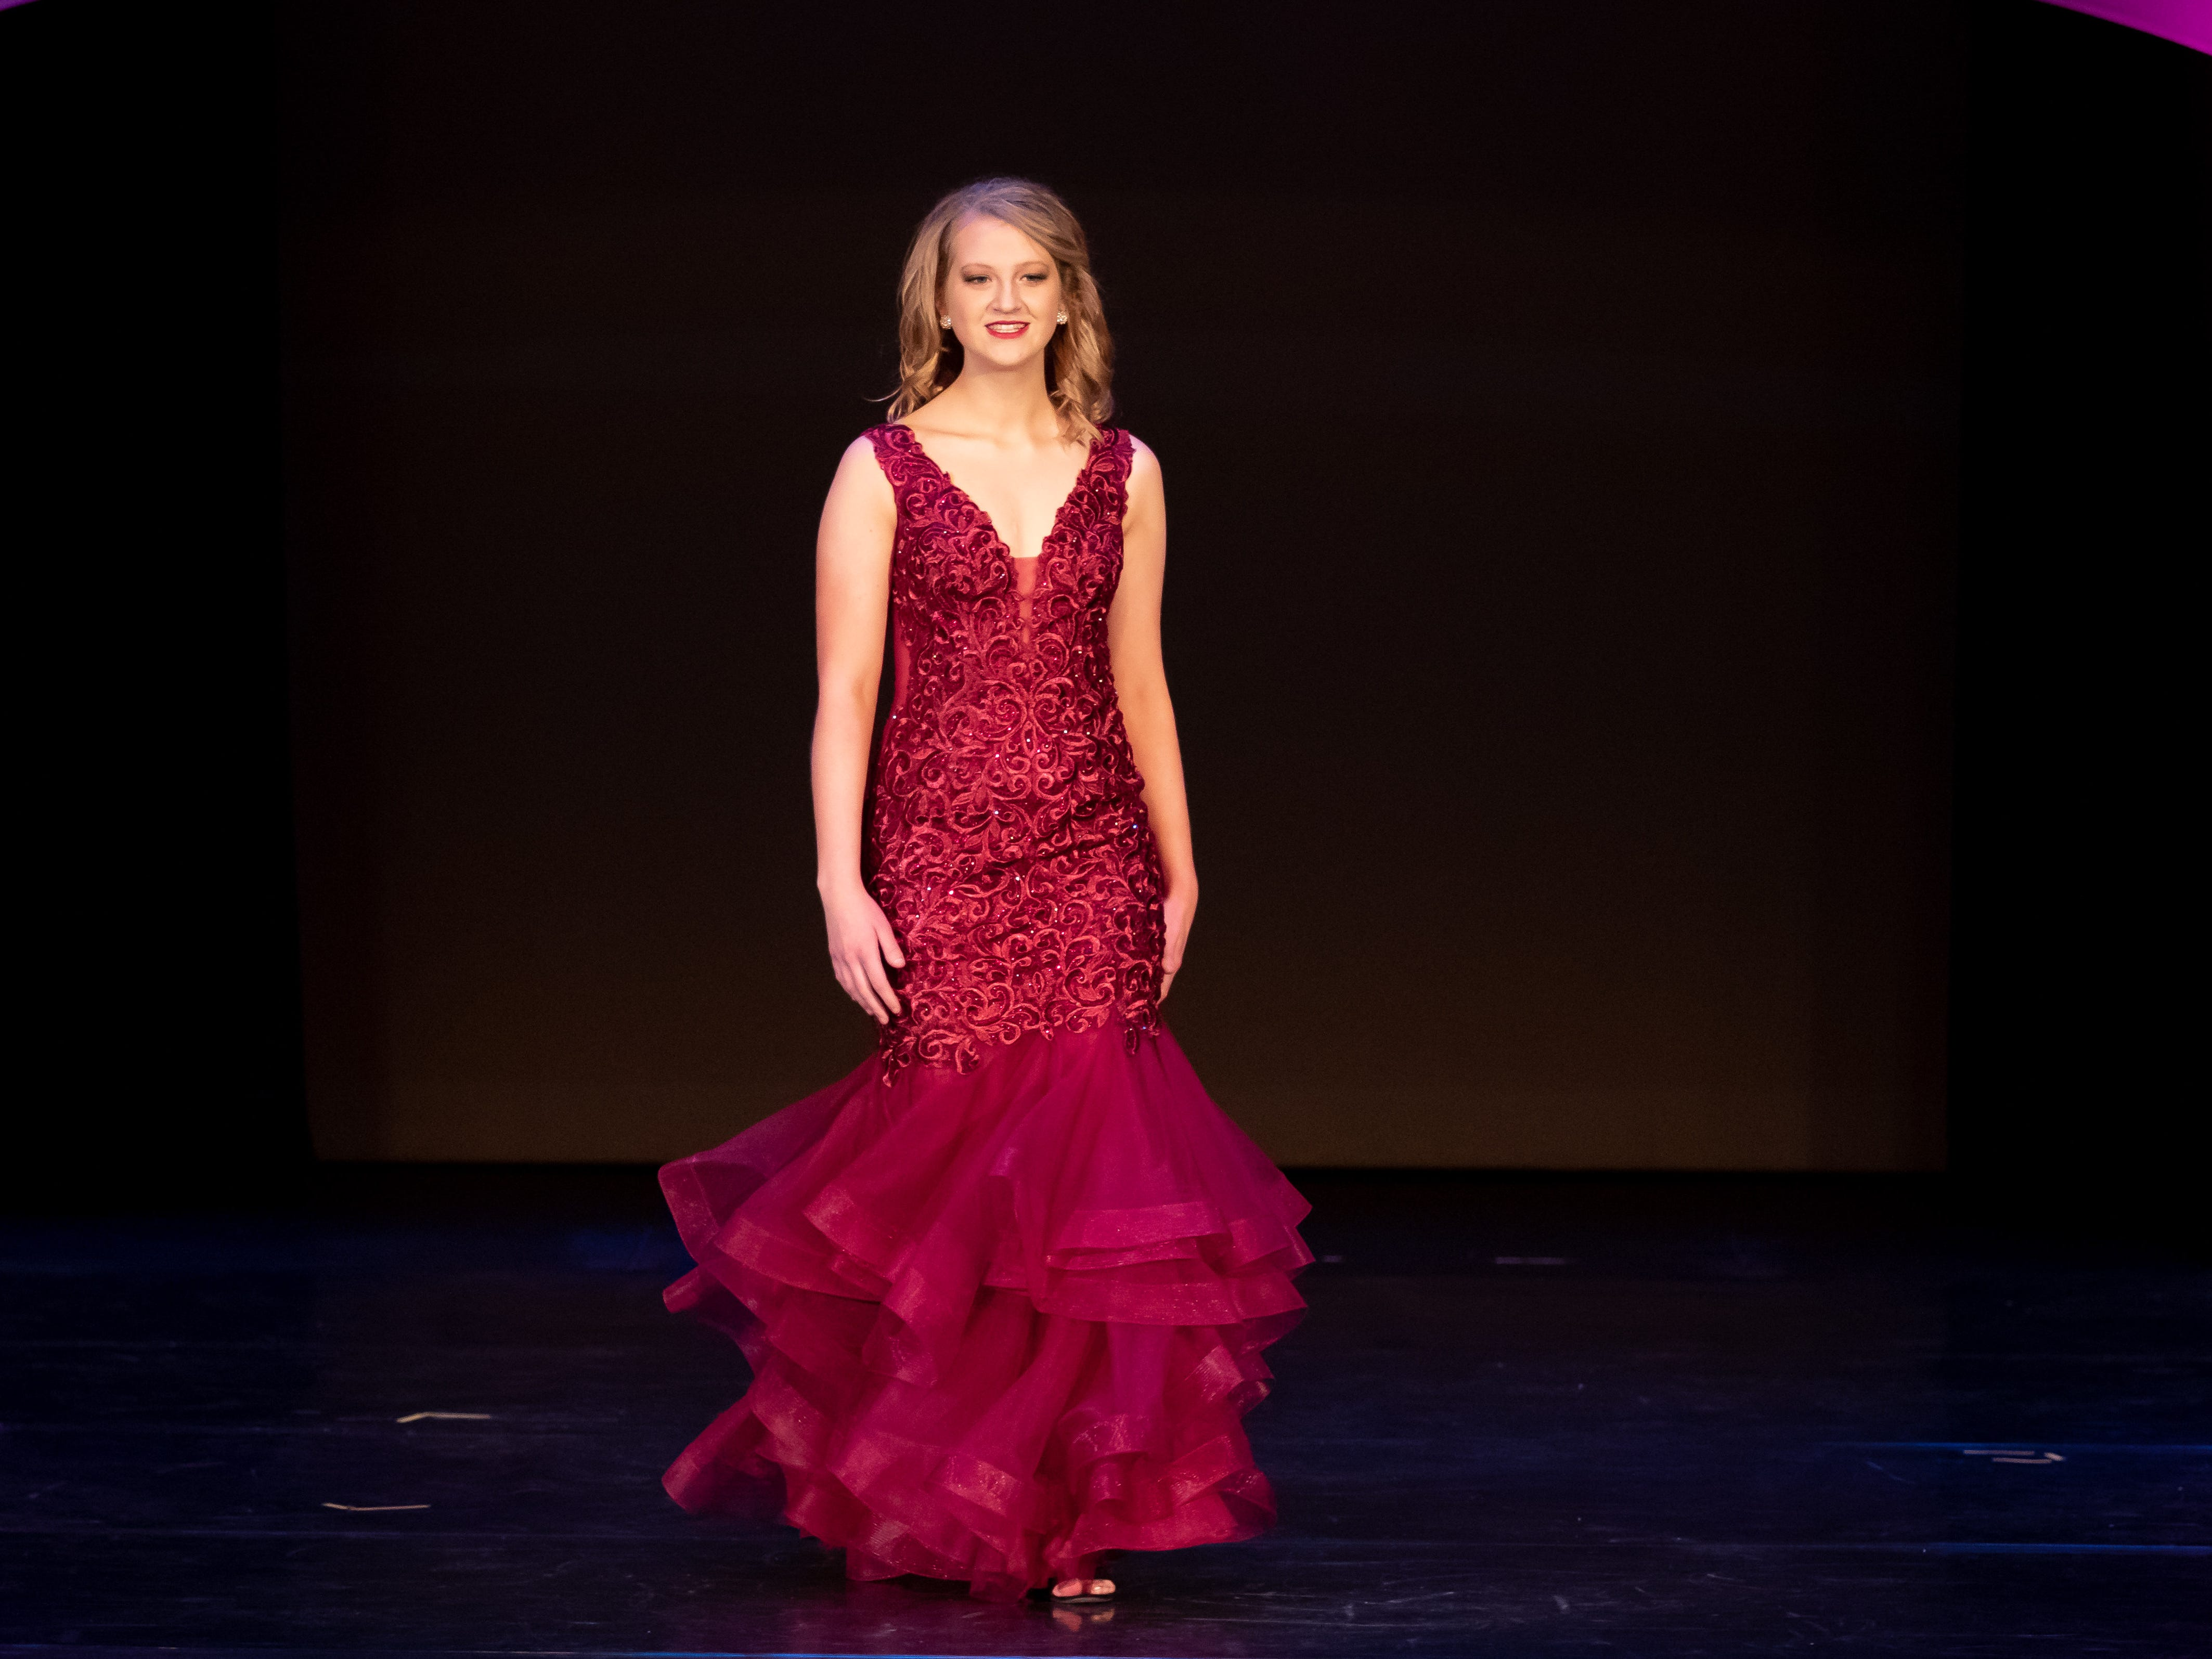 Kate Czarny competes in the Evening Wear competition during the 2019 Miss Wisconsin Rapids Area Scholarship Pageant on Saturday, Oct. 27, 2018, at the Performing Arts Center of Wisconsin Rapids.